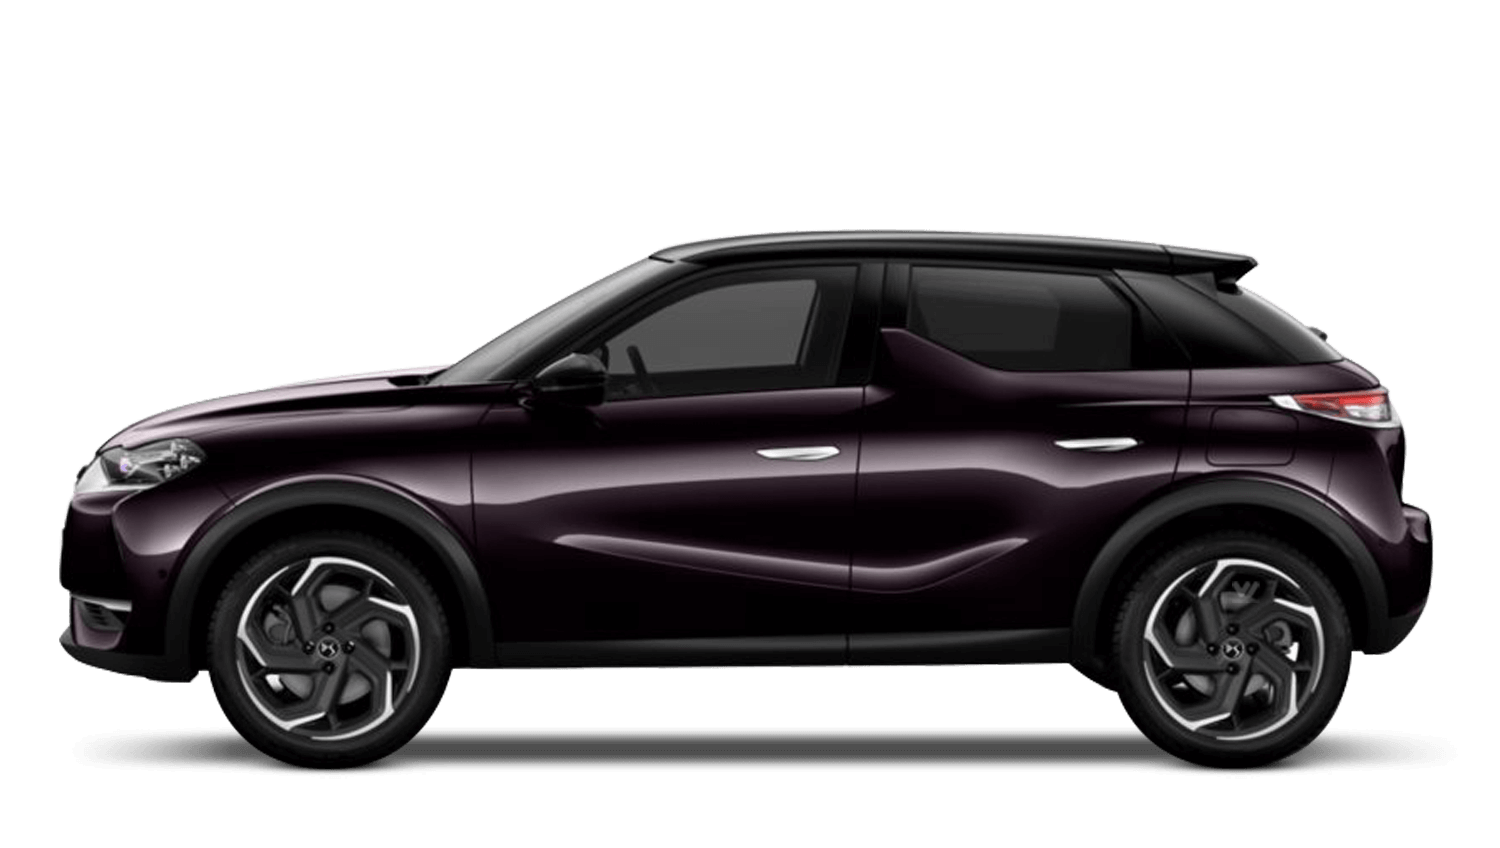 Whisper Purple (Metallic) DS DS 3 Crossback